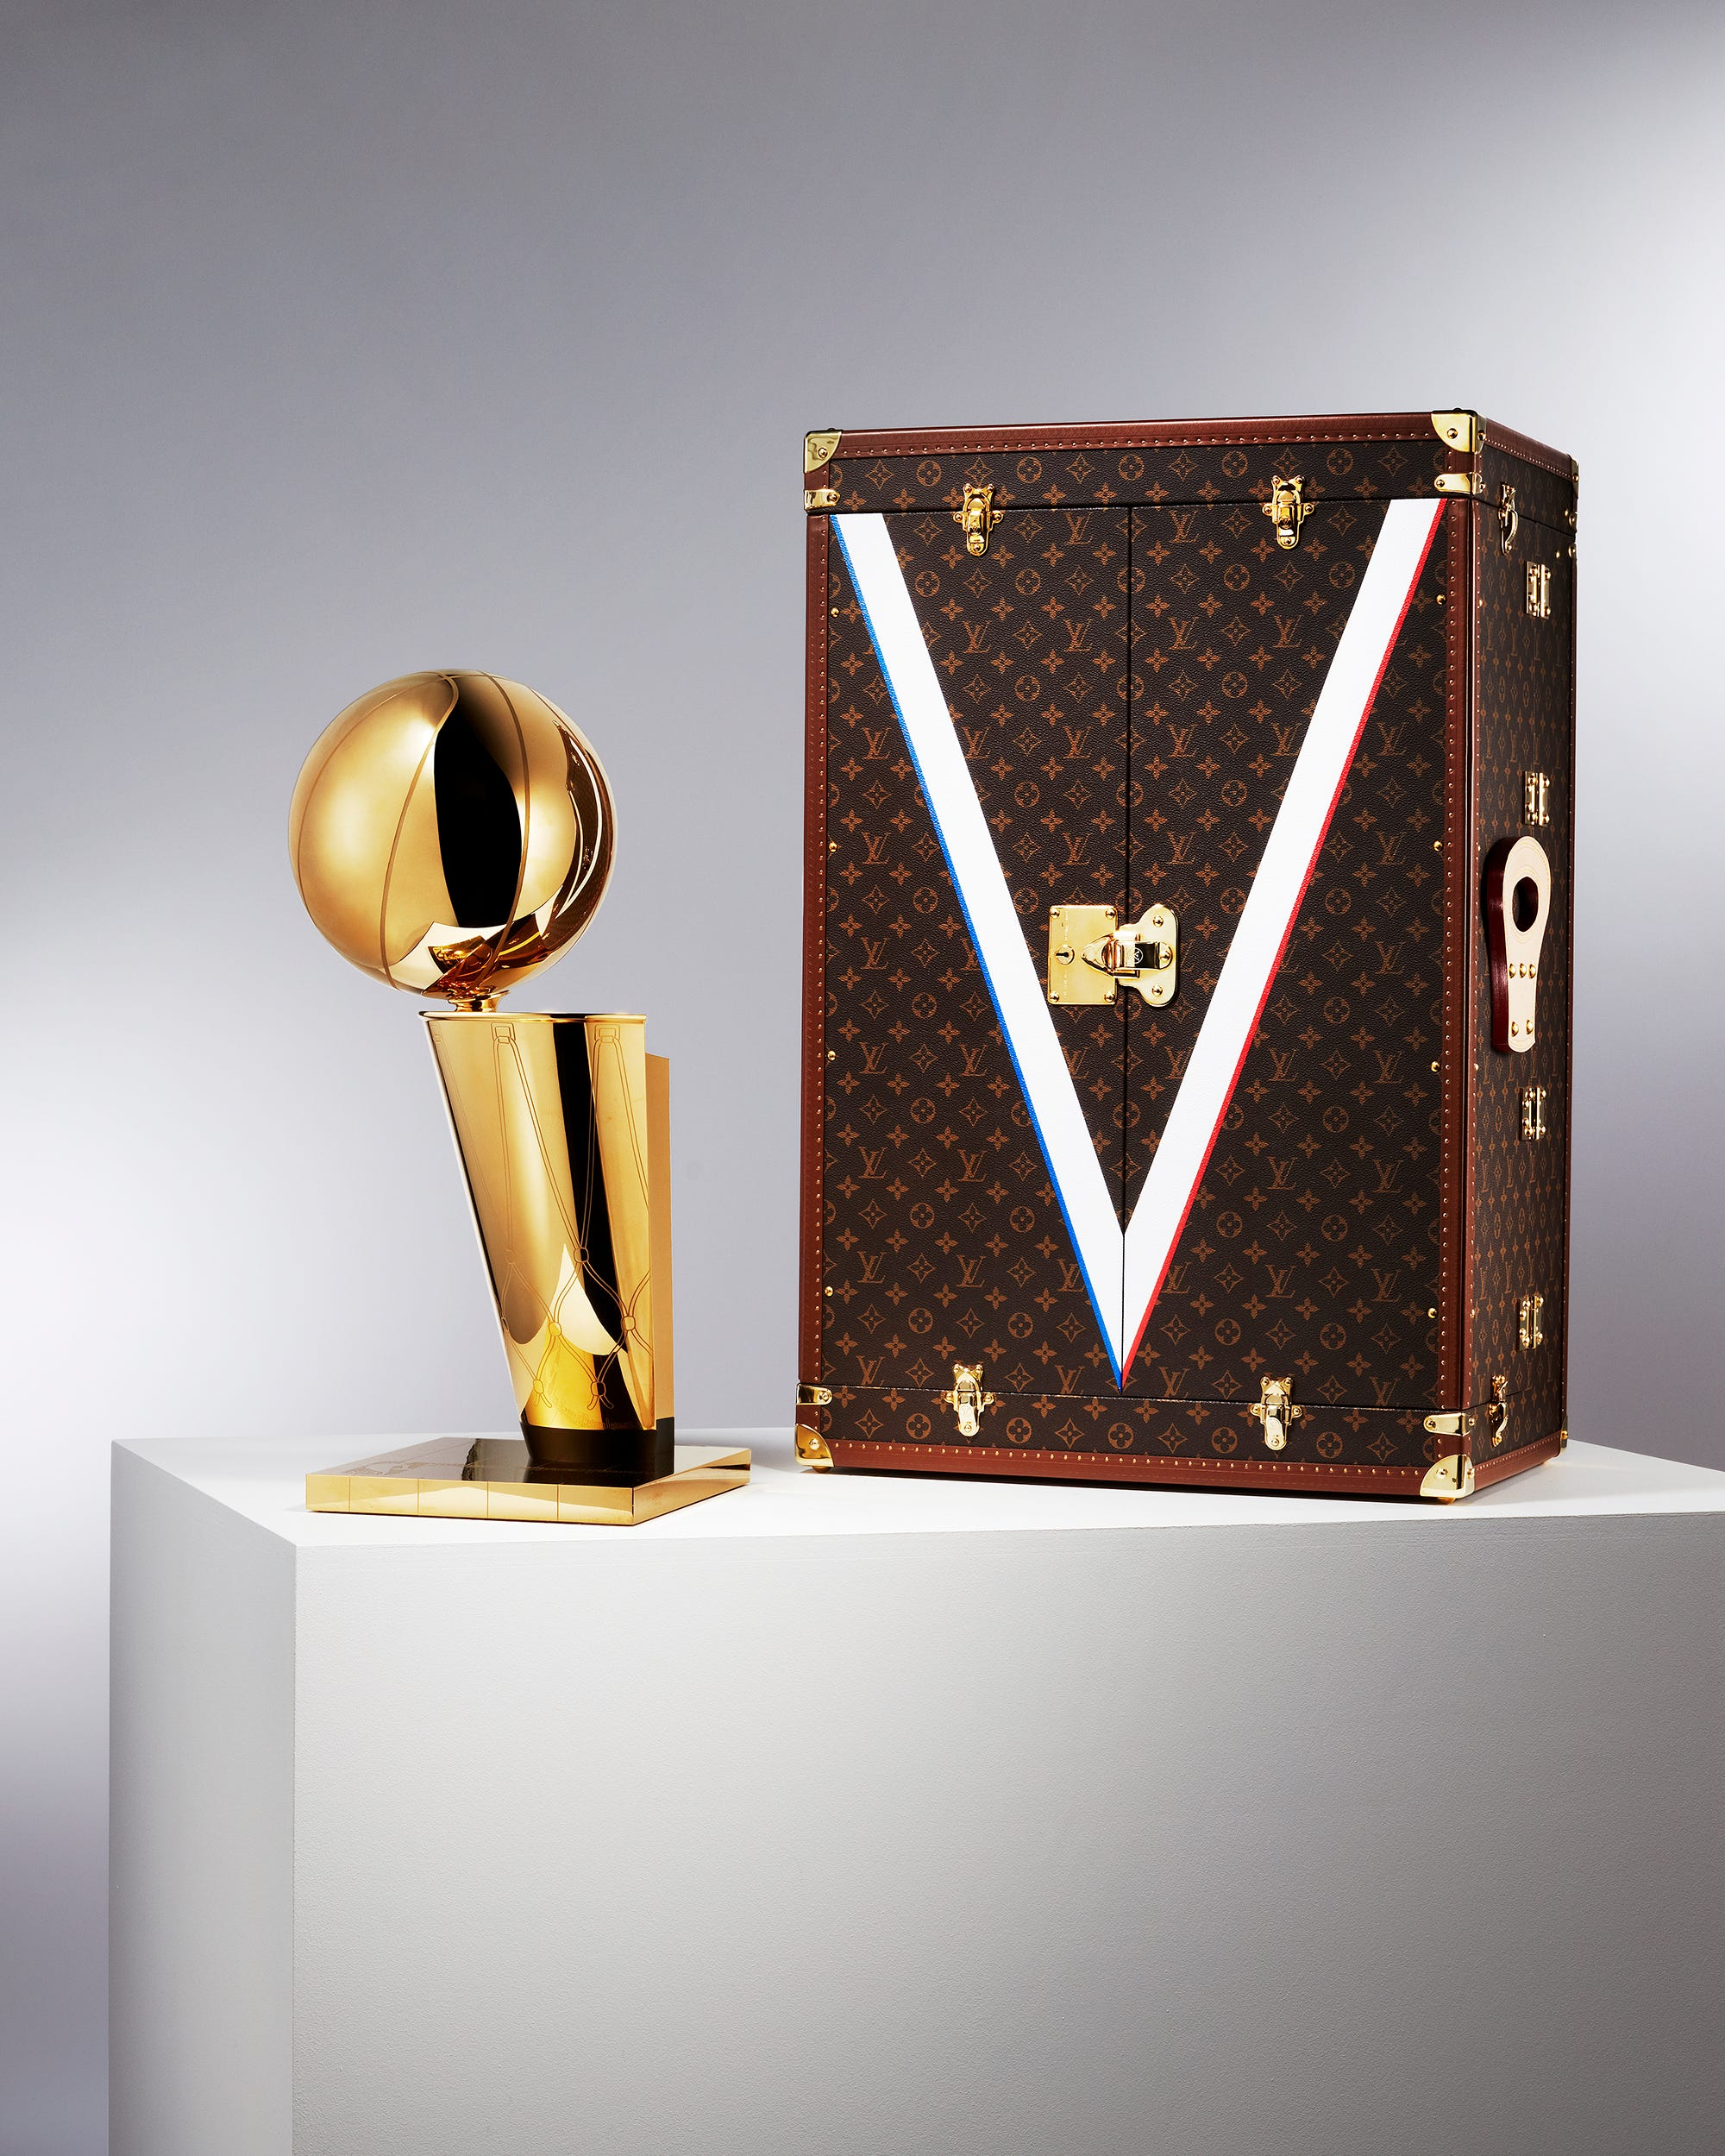 High fashion and NBA join forces for Louis Vuitton championship trophy case